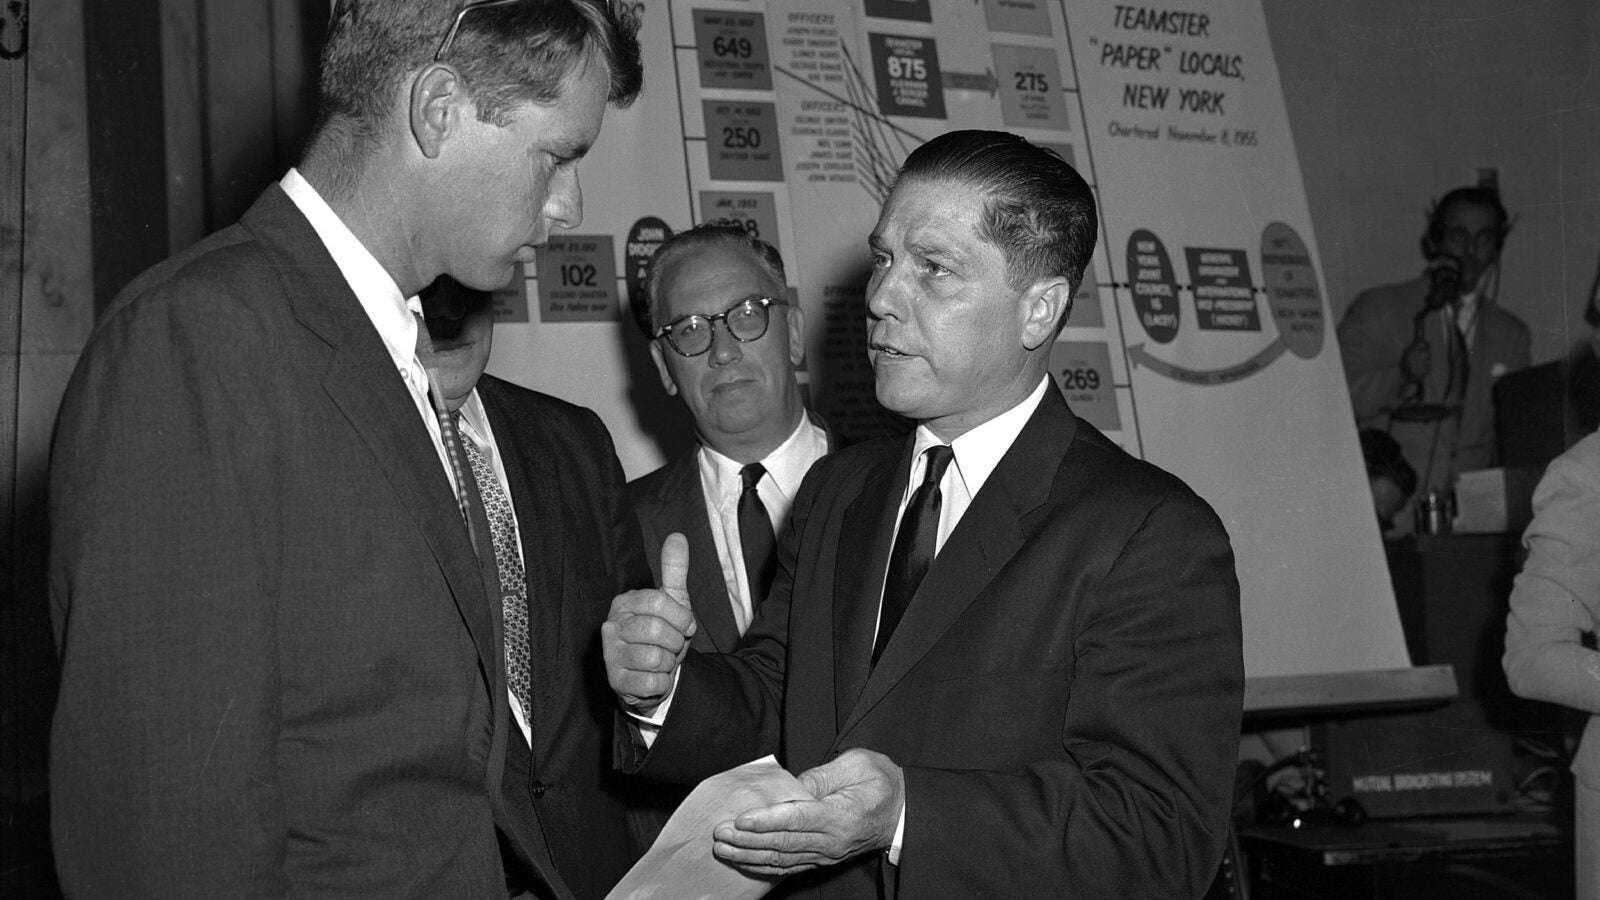 James Hoffa speaks with Robert F. Kennedy